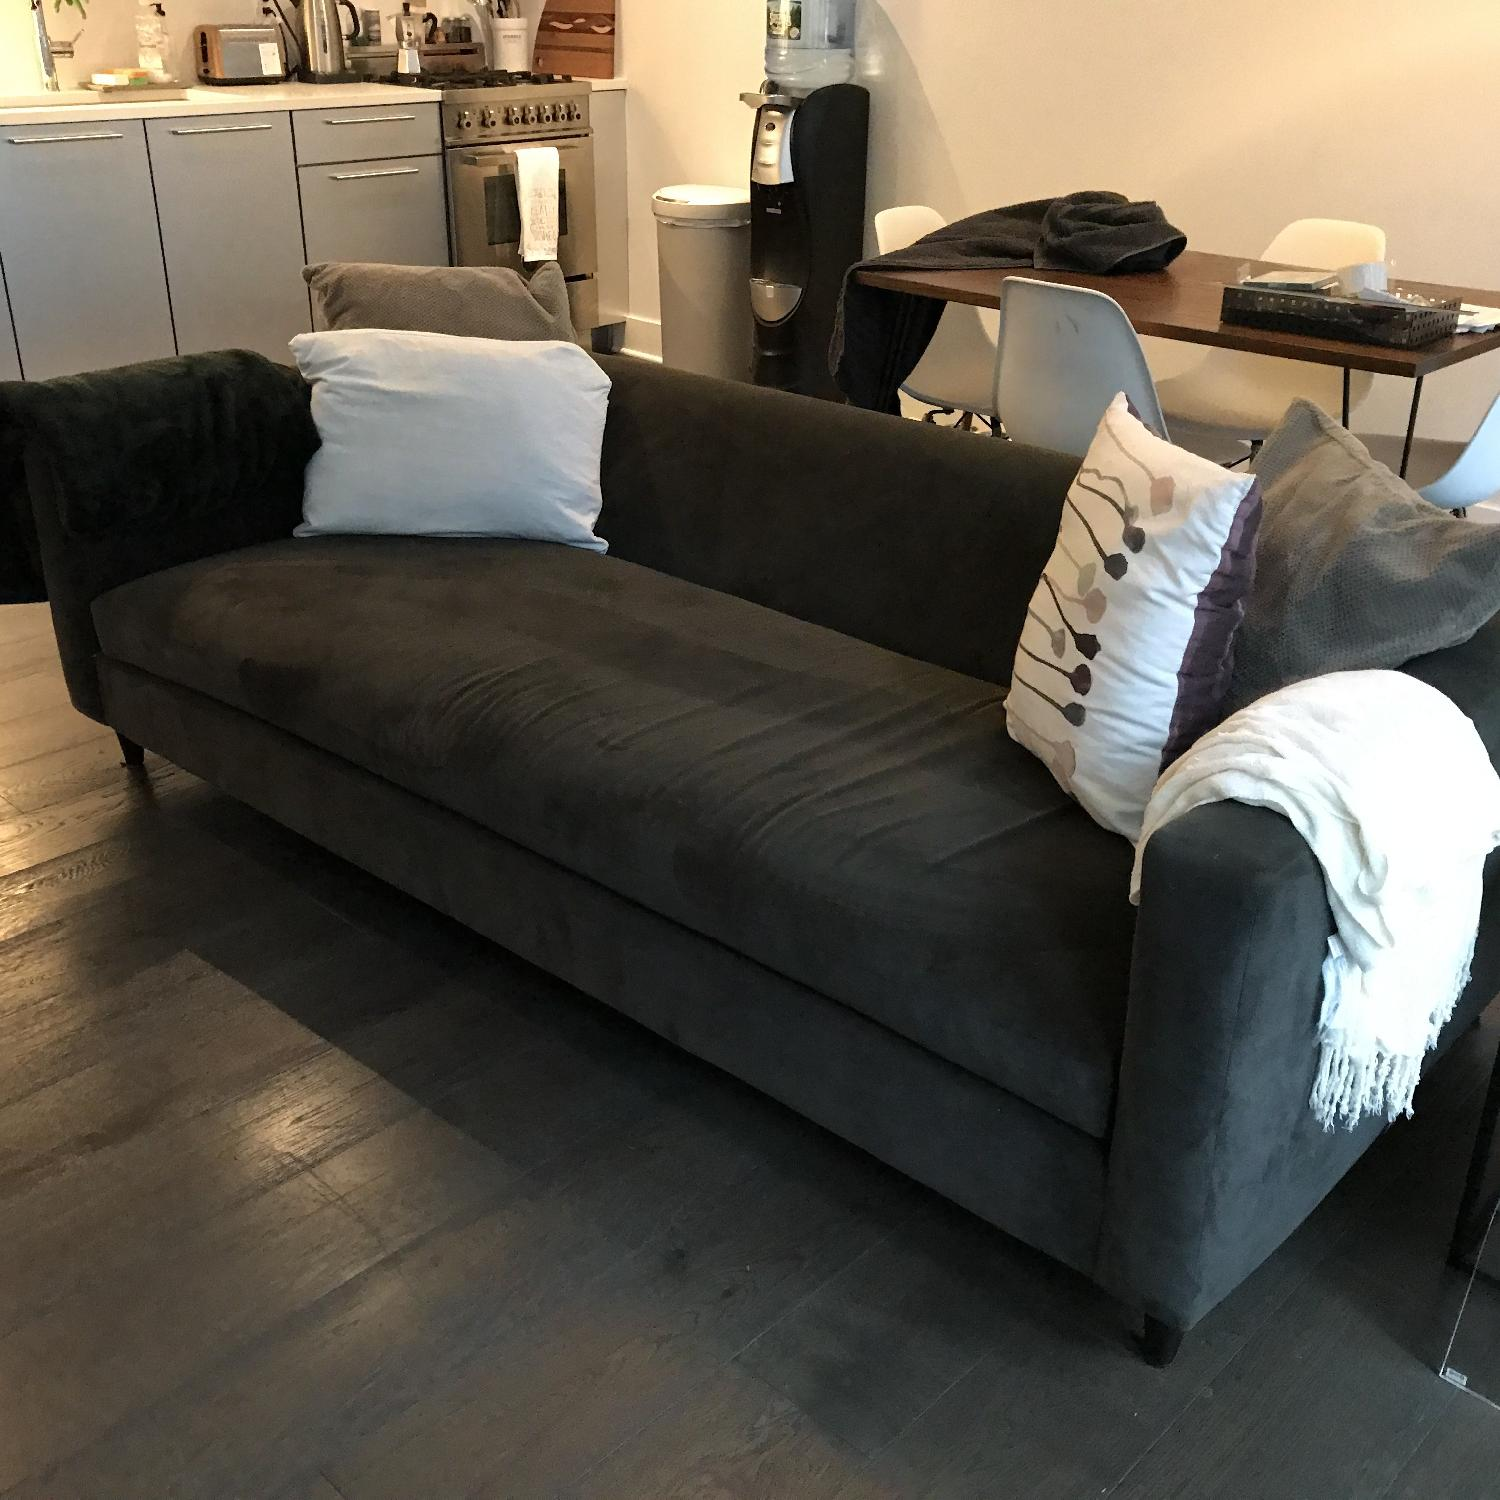 Cb2 Sofa Leather Couches Ikea Cb2 Couch Karlstad Sofa Review Has